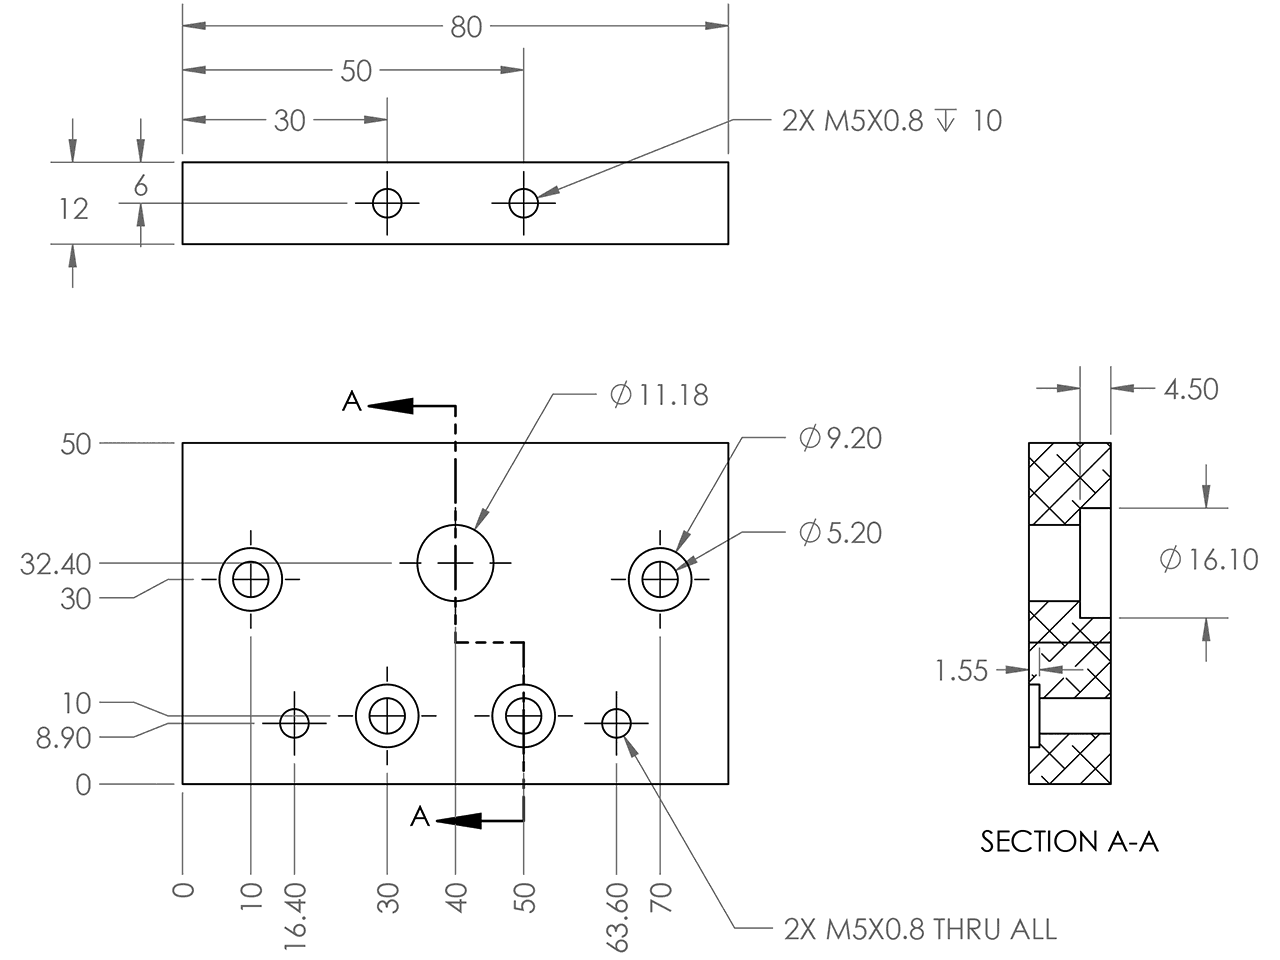 Placa final guía lineal C-Beam CI-Beam / C-Beam end mount, OpenBuilds Mexico